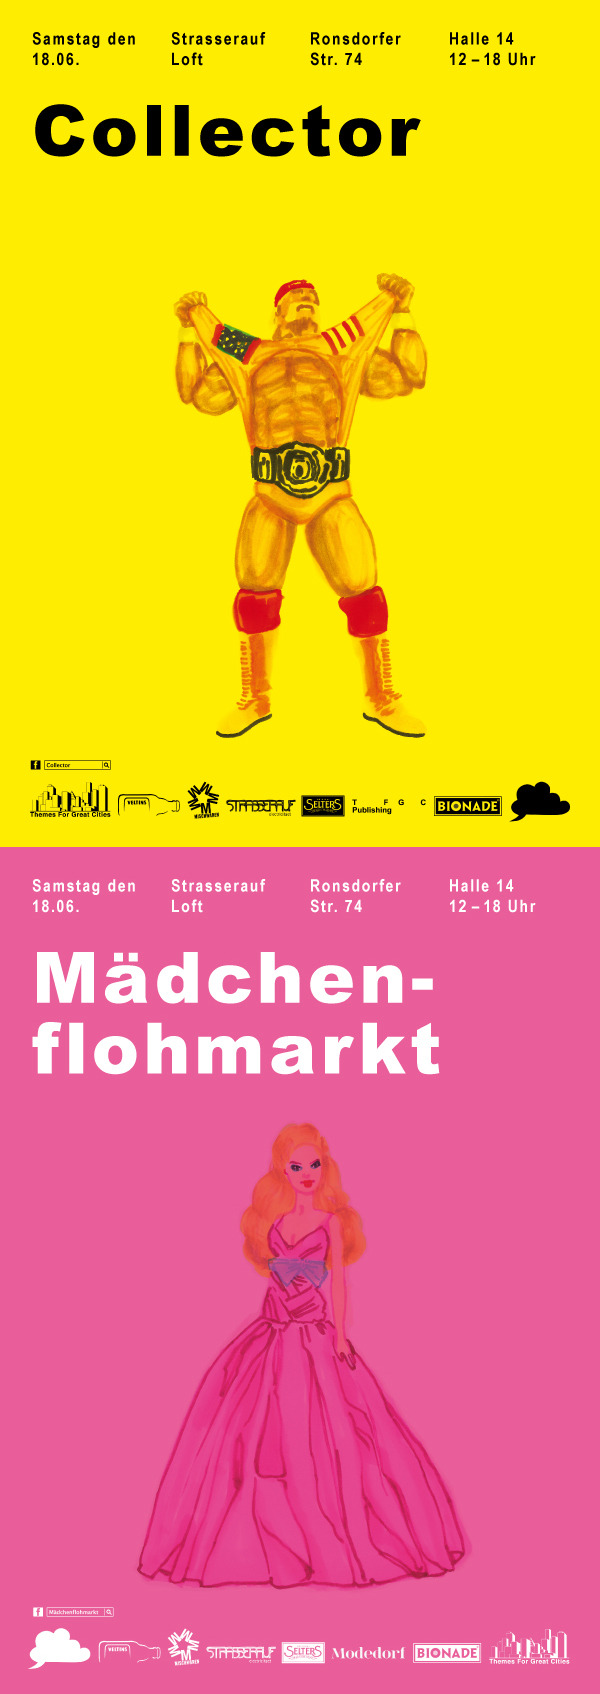 Mädchenflohmarkt / Collector Double Poster for a parrallel girls and boys fleamarket event. Mädchenflohmarkt for the girls, Collector for the boys.